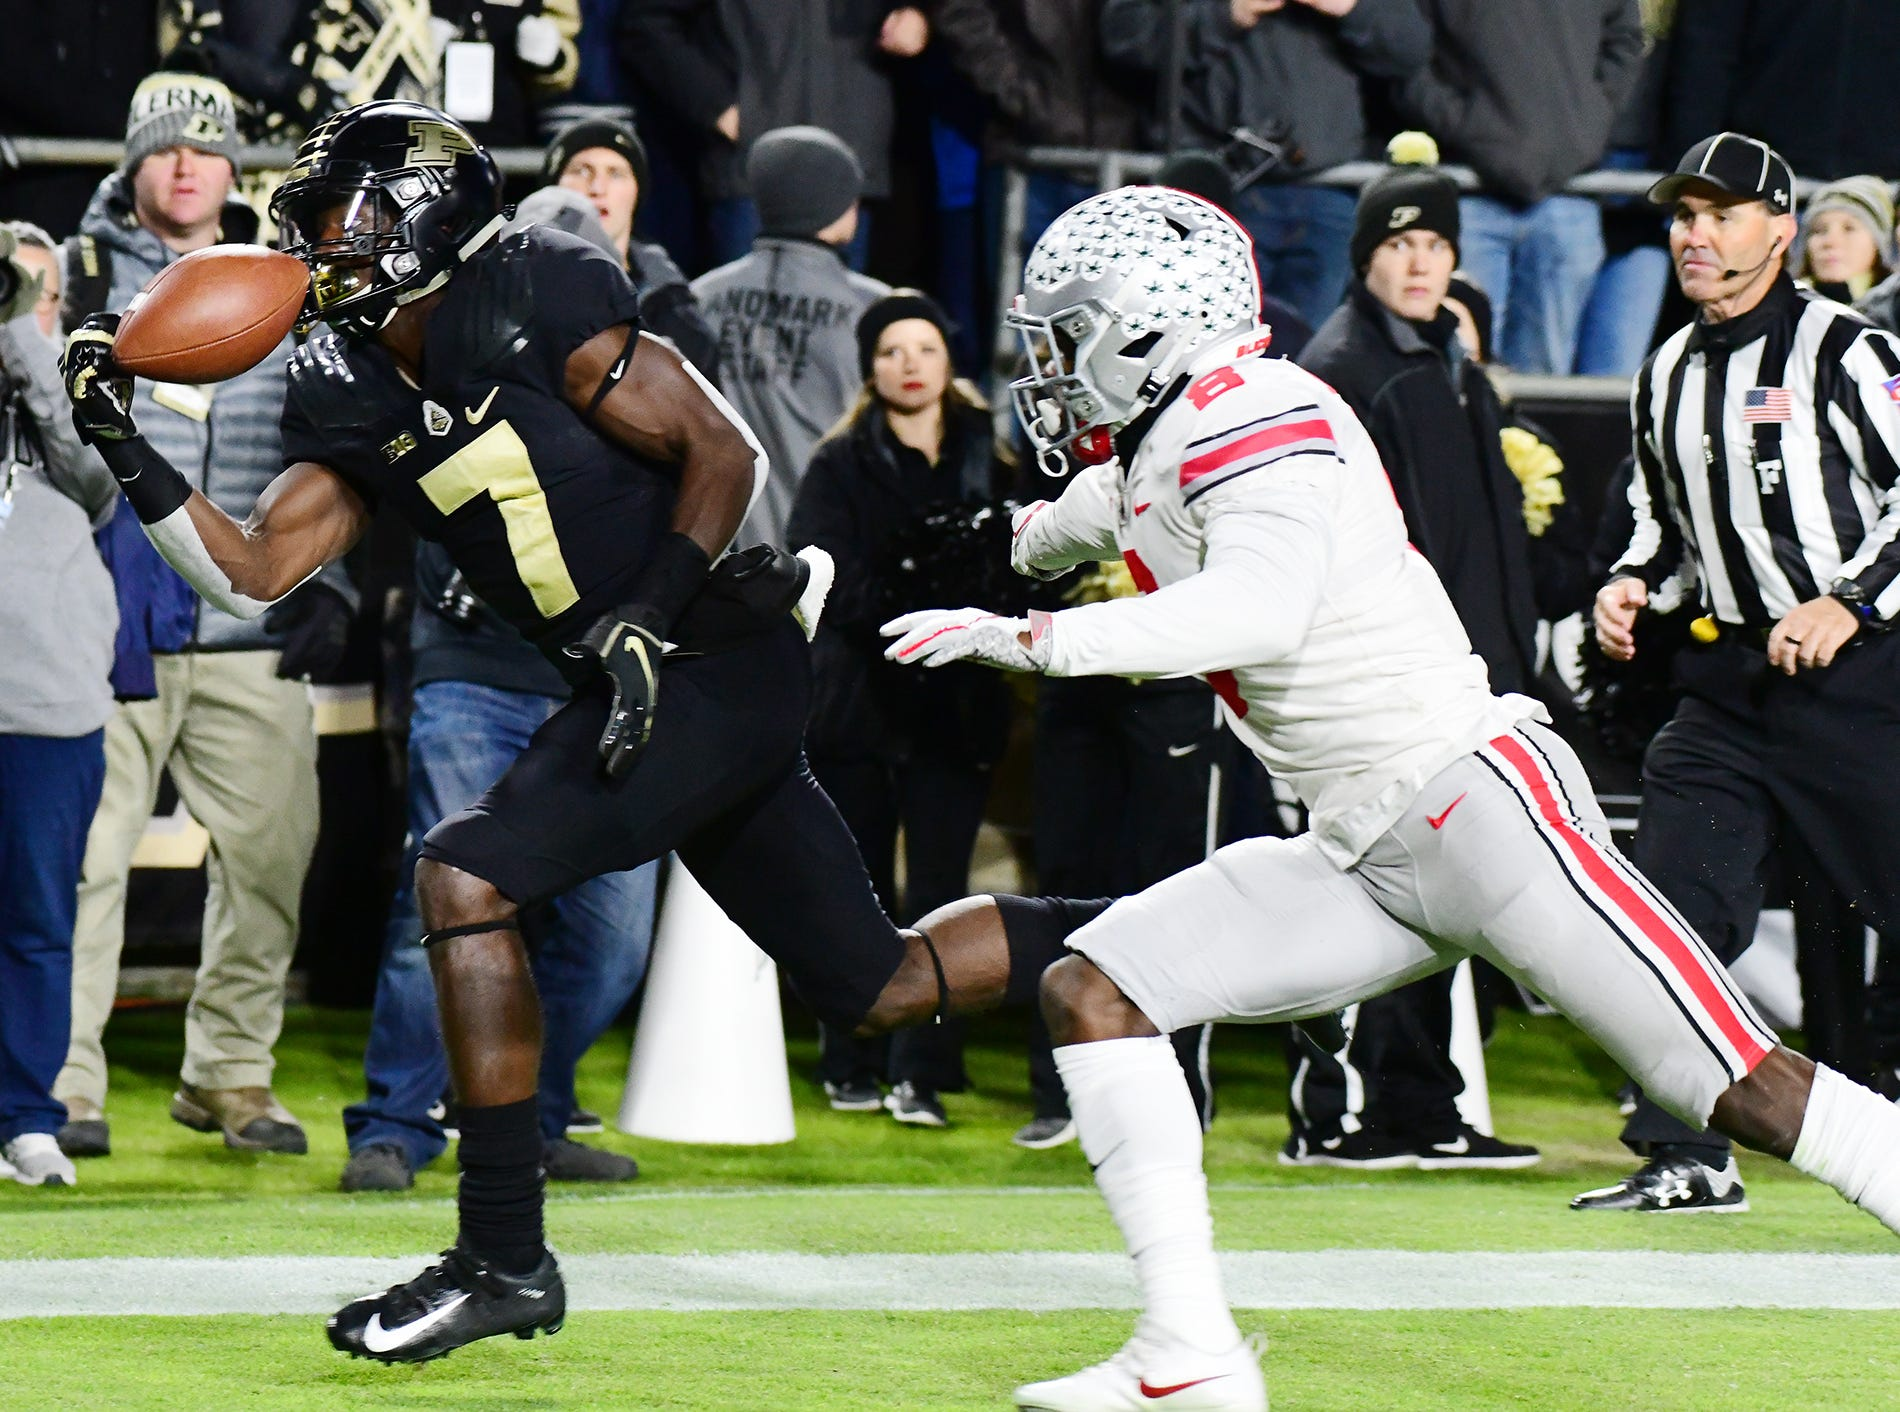 Isaac Zico of Purdue hauls in a touchdown pass in the first half against Ohio State Saturday, October 20, 2018, at Ross-Ade Stadium. Purdue upset No. 2 ranked Ohio State 49-20.